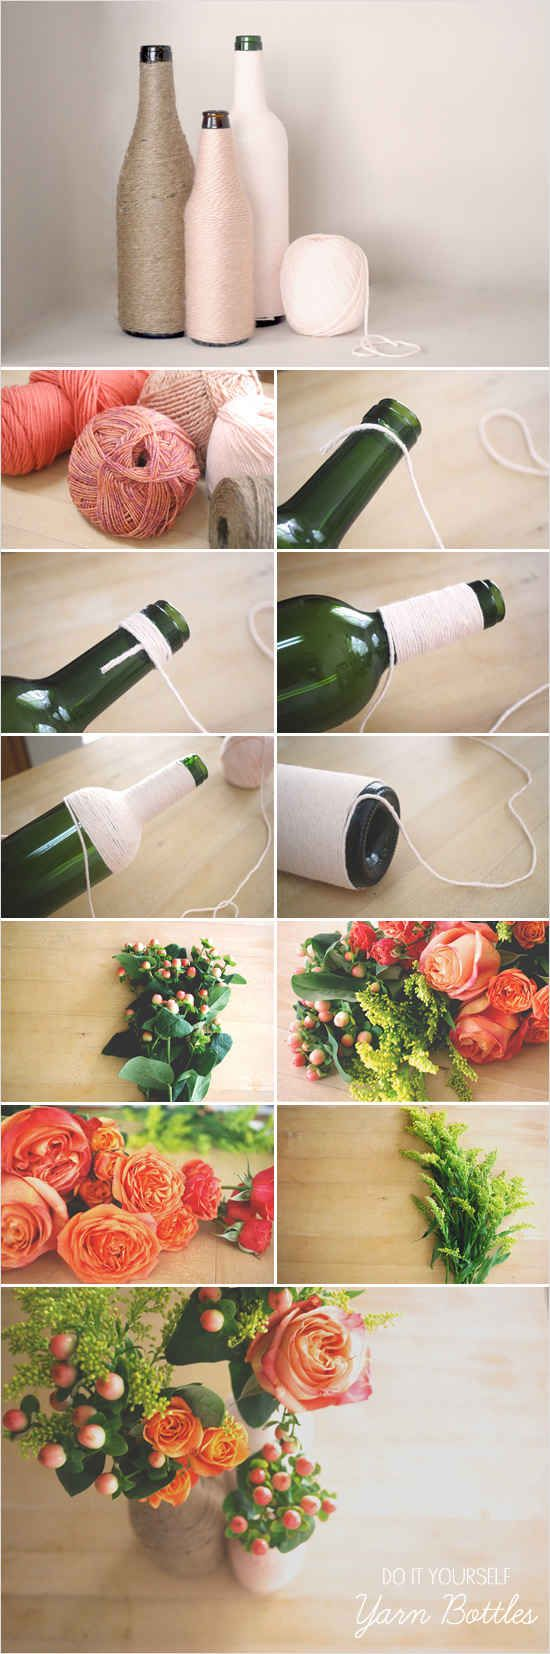 Wedding decorations with wine bottles  Pin by Jessica Webster on Staceys Wedding Ideas  Pinterest  Bottle